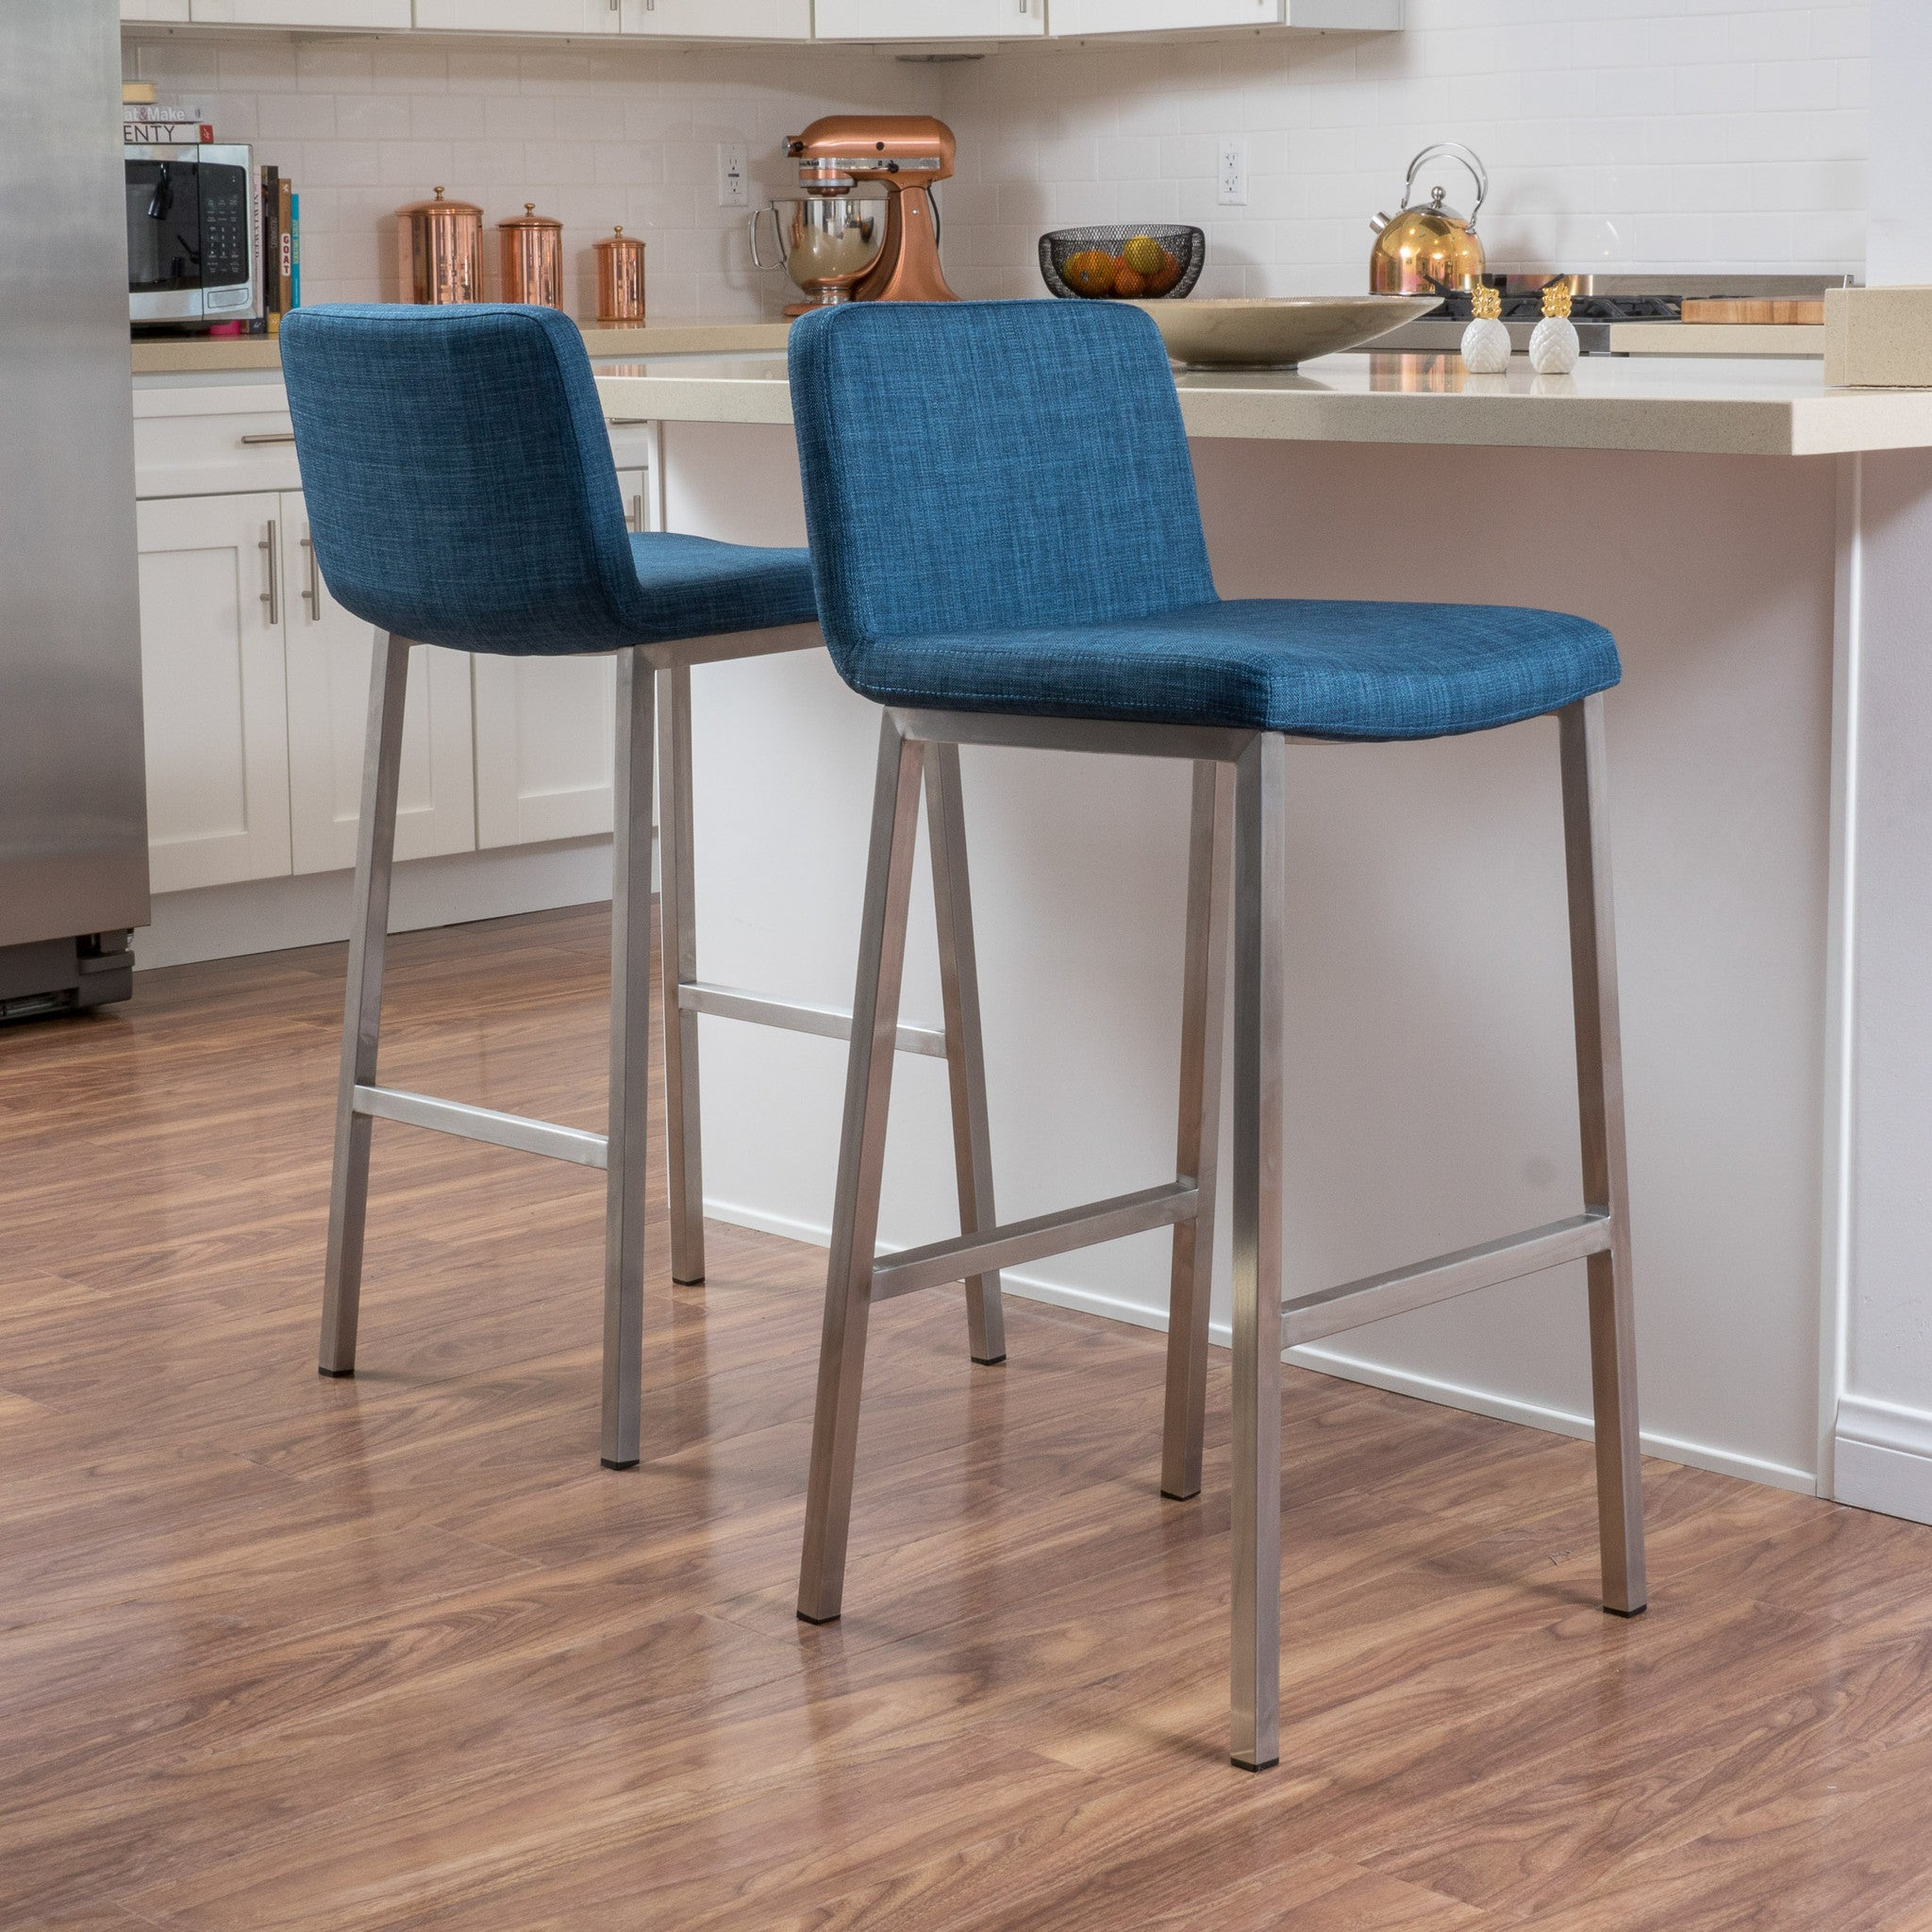 white metal stool stools bar of breakfast kitchen navy stainless blue set adjustable brushed bat cheap turquoise